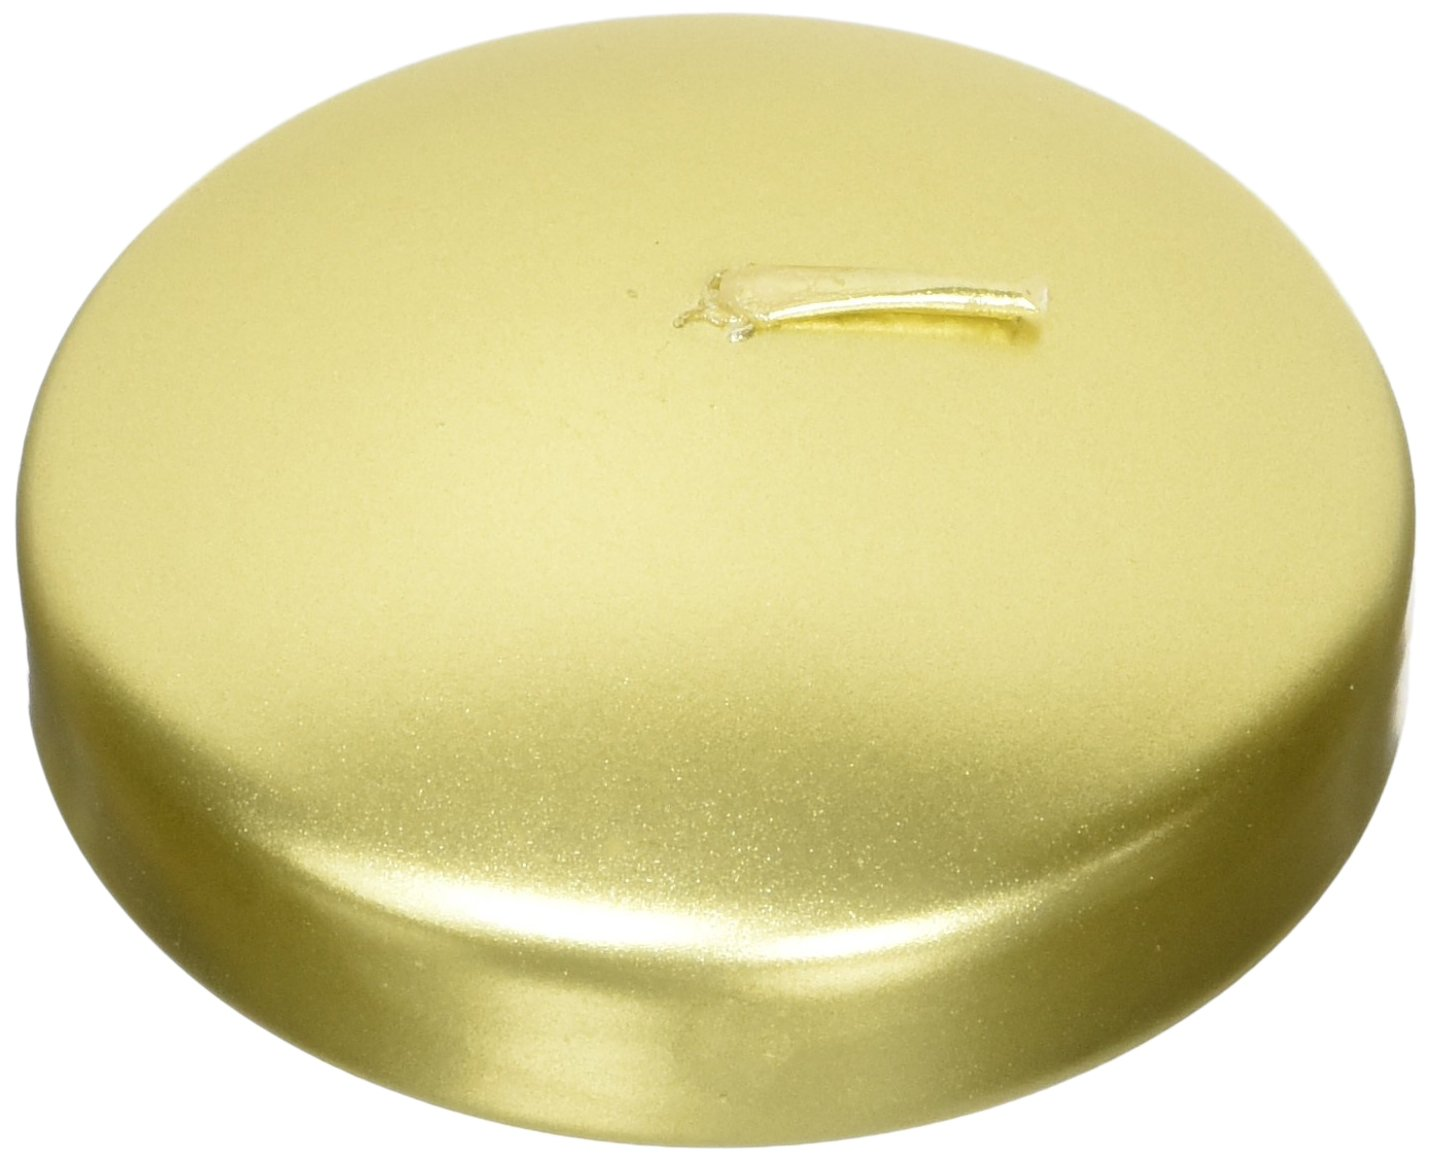 Mega Candles - Unscented 3 Floating Candles - Gold, Set of 12 FBA_CGA064-GD-12